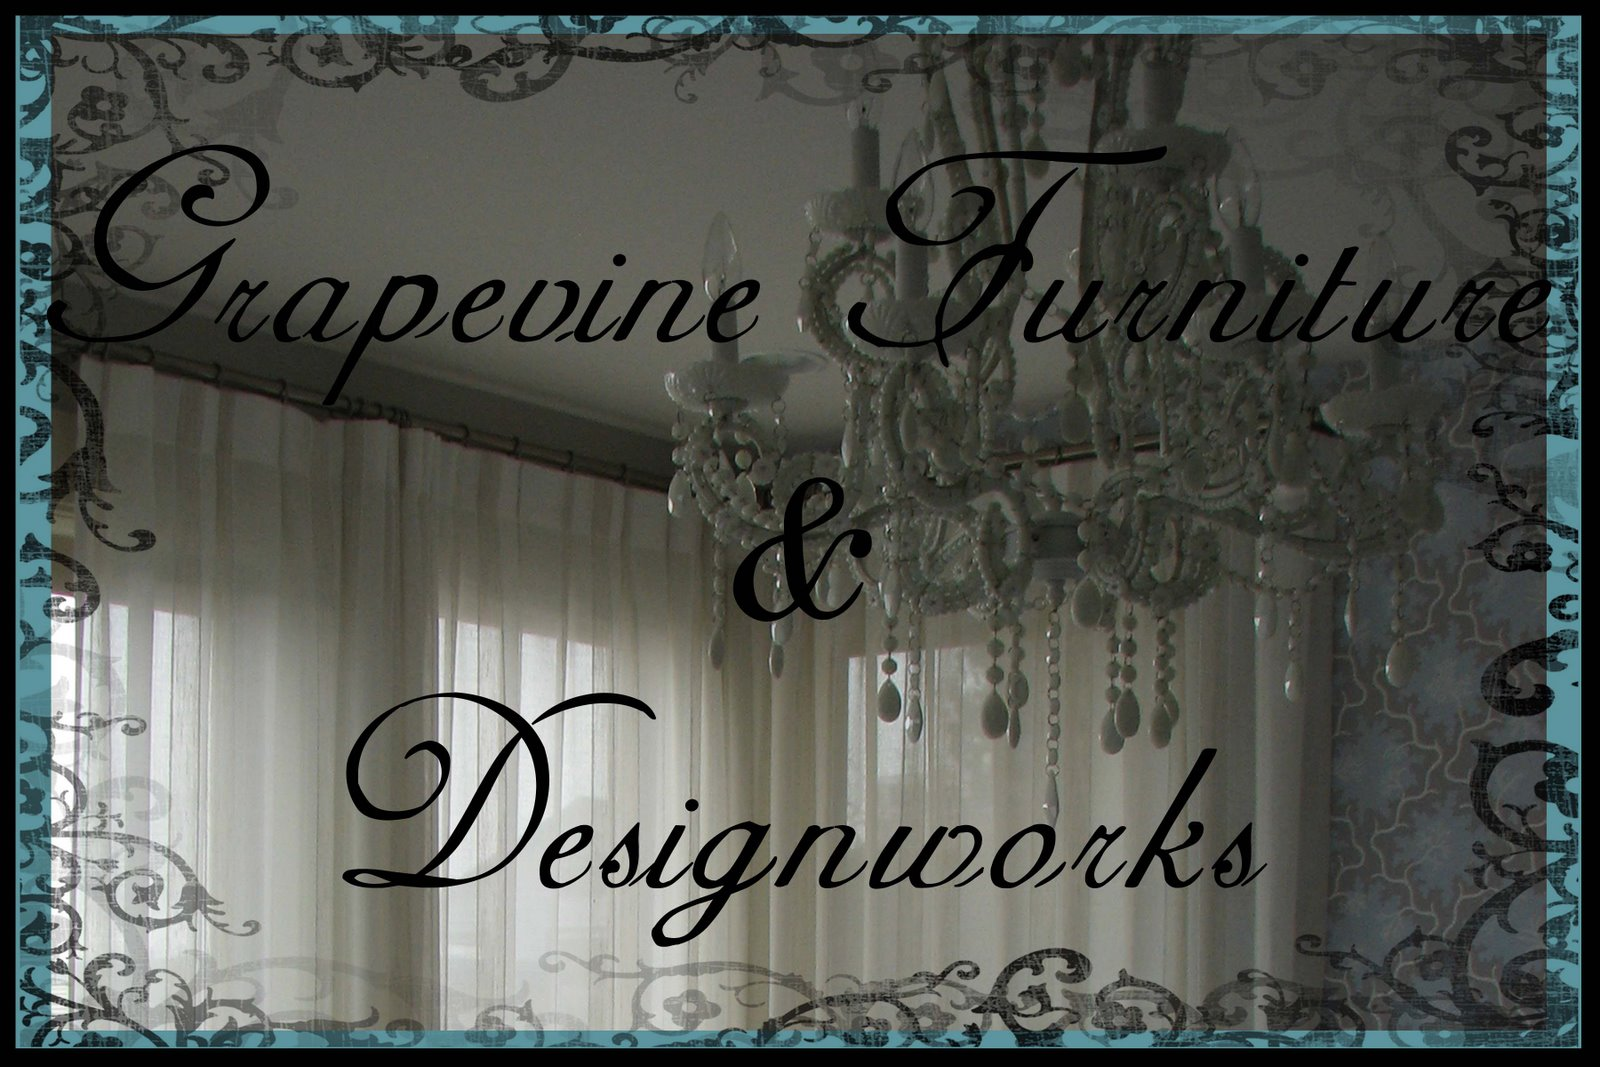 Grapevine Furniture & Designworks